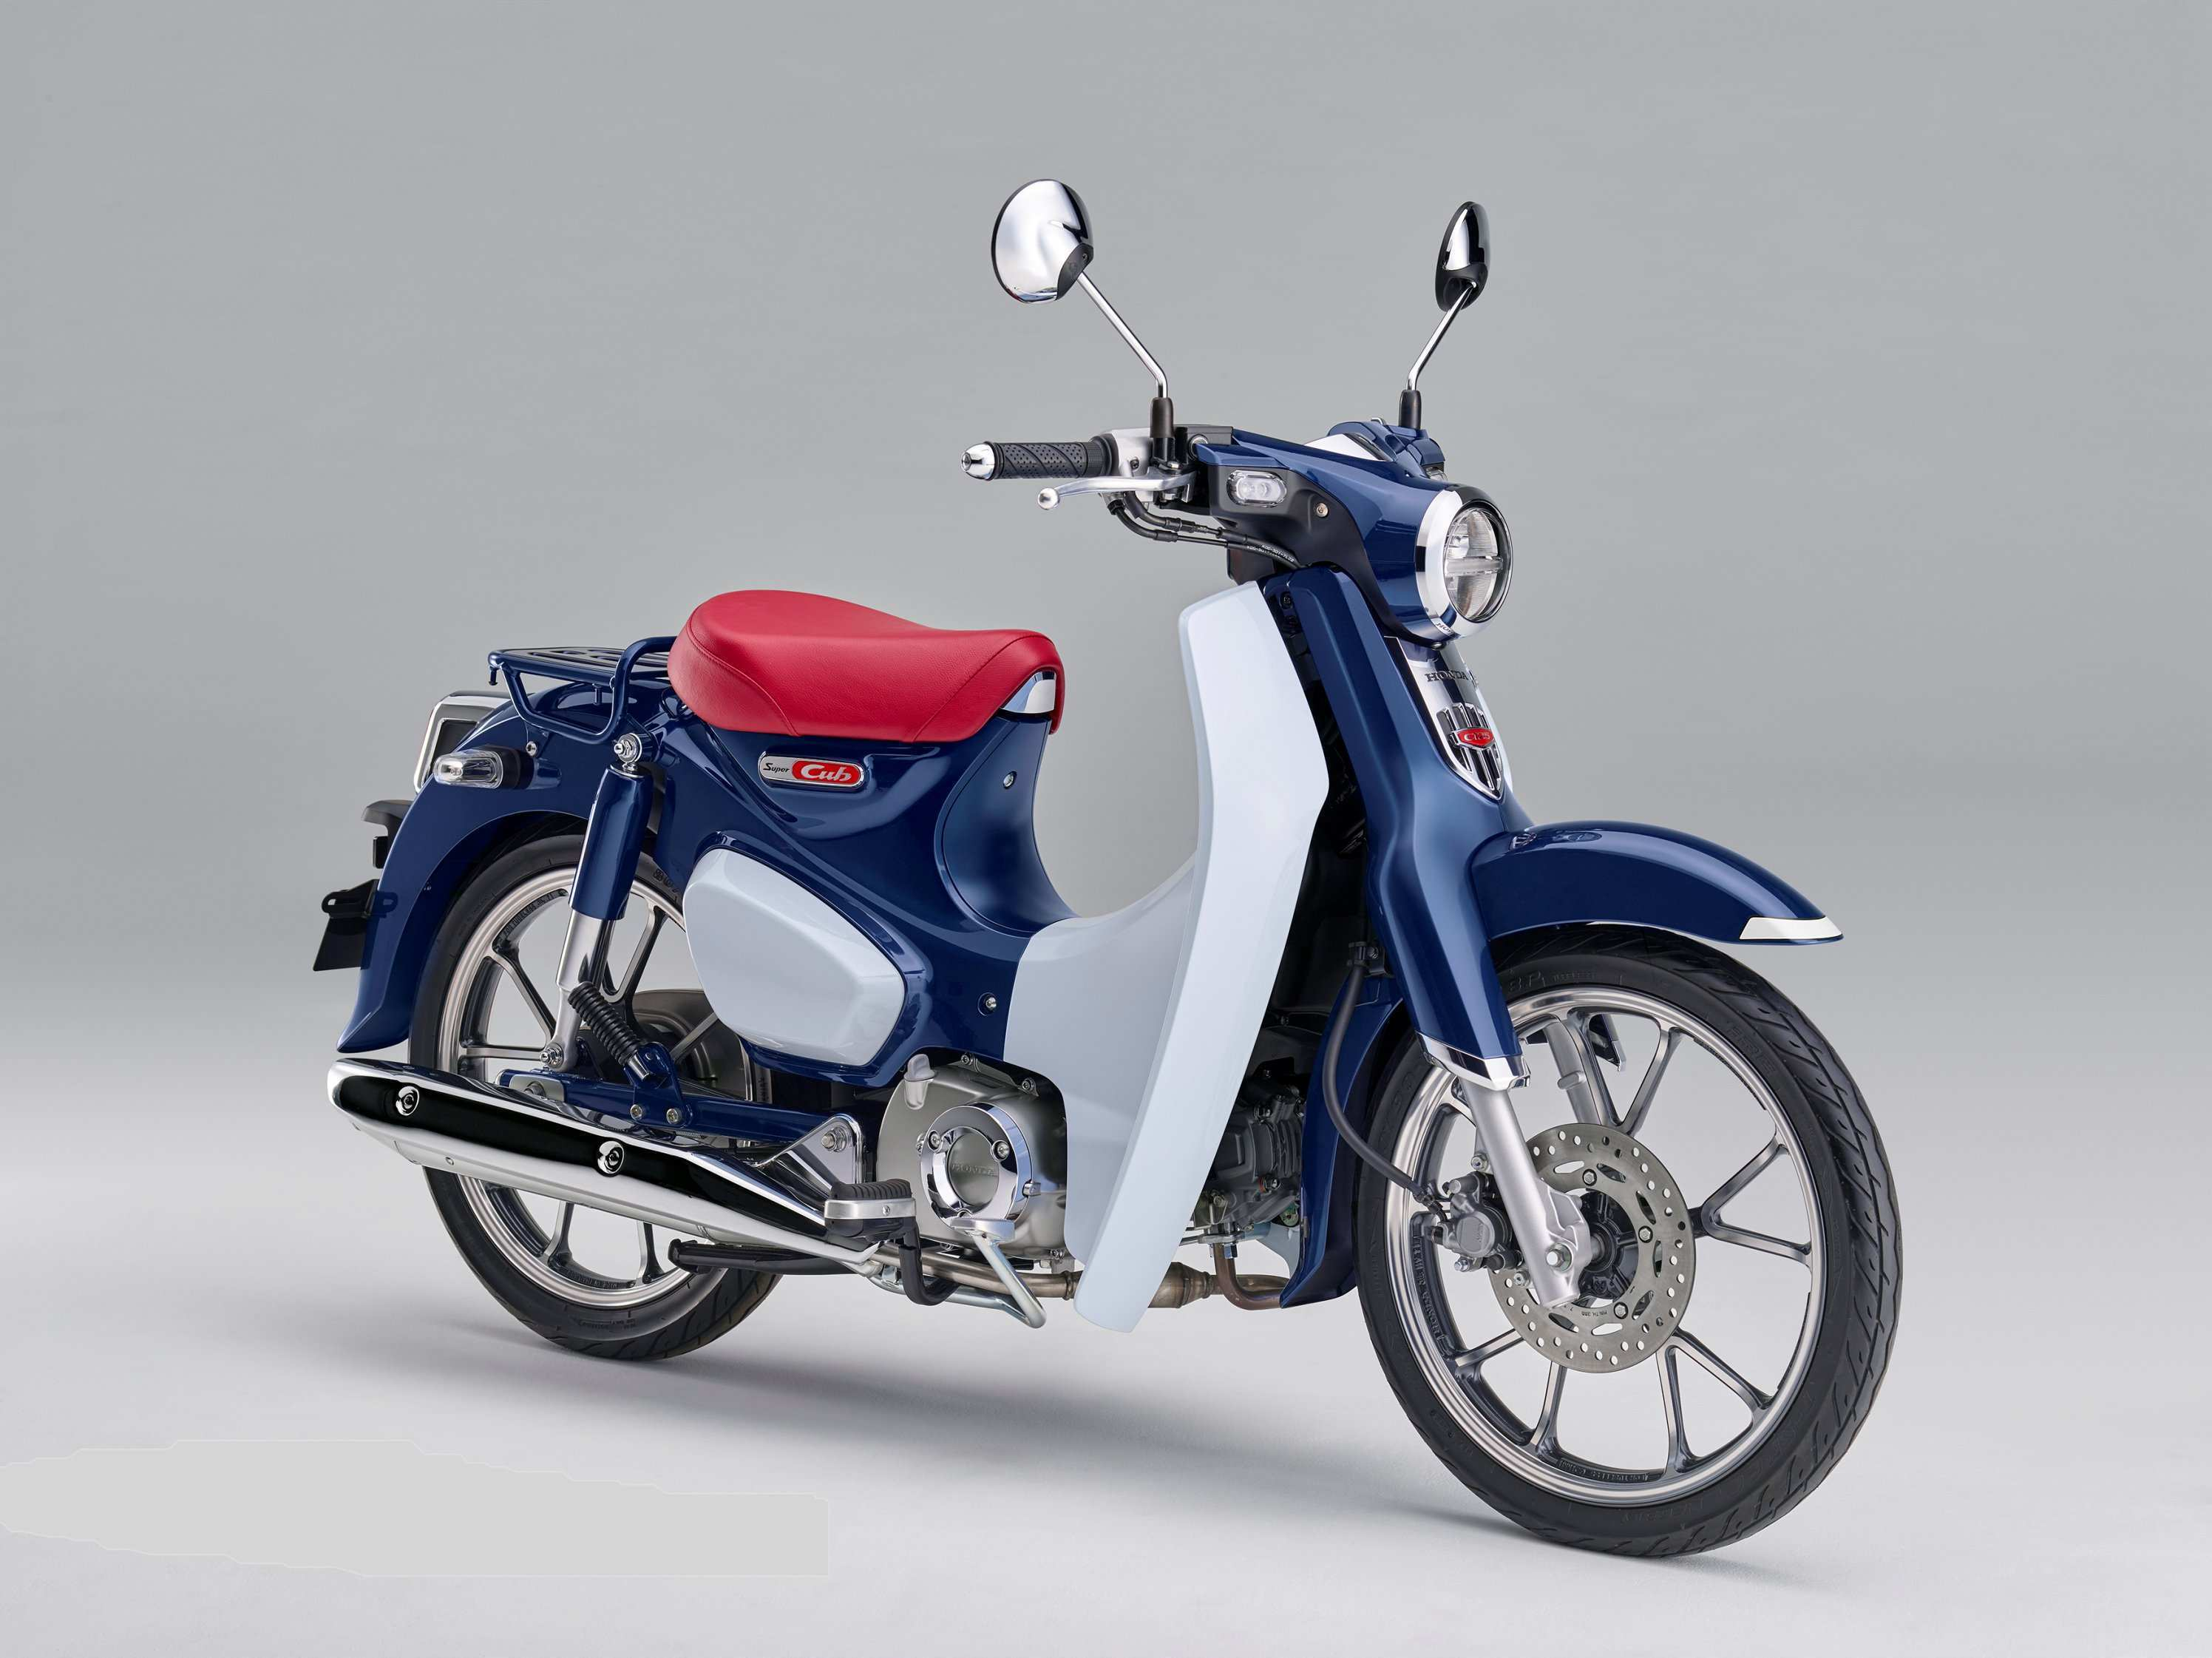 11 All New 2019 Honda 125 Picture with 2019 Honda 125